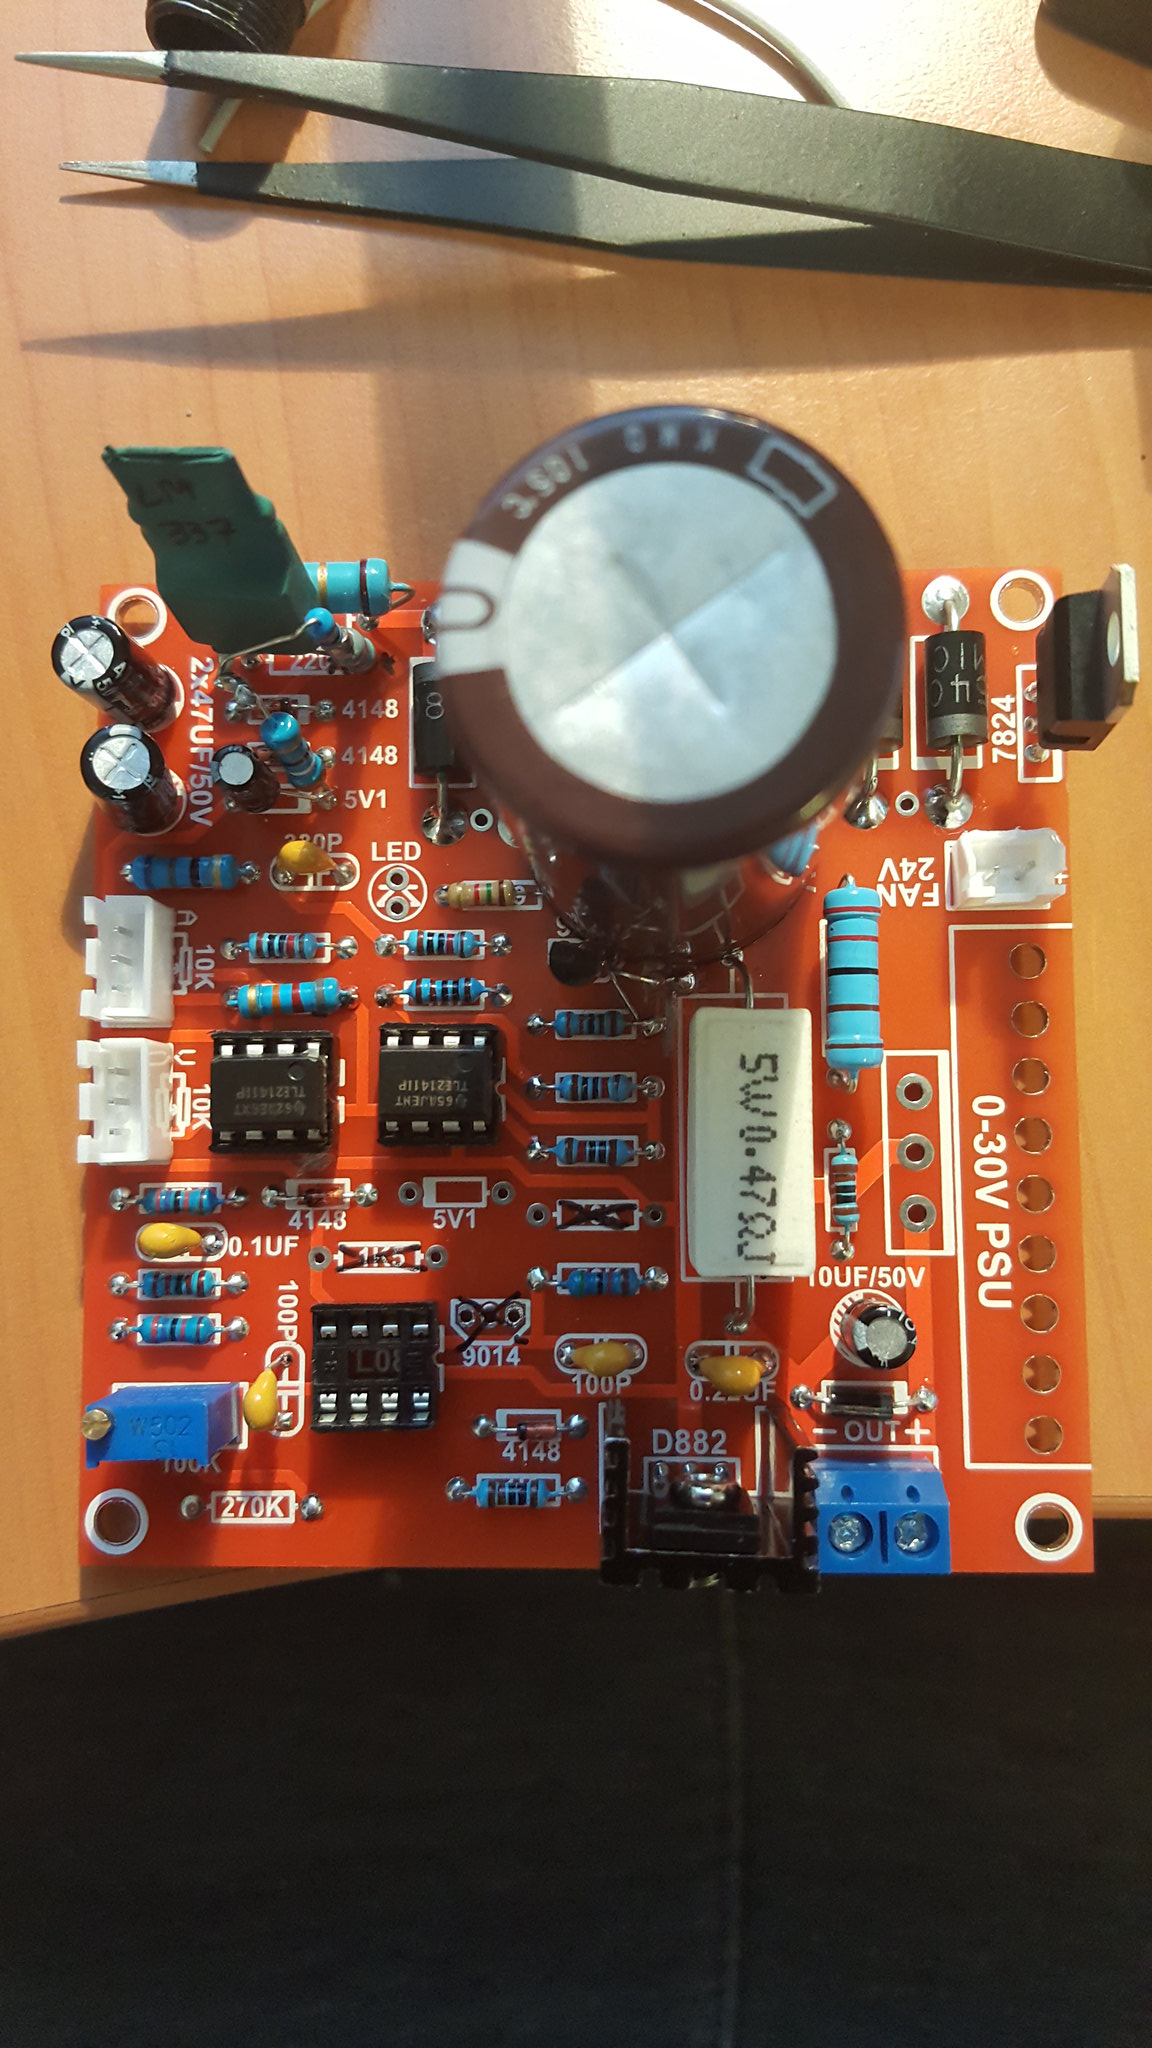 Pauls Diy Electronics Blog Tuning A 030v Dc 03a Psu Kit Power Supply Regulator 38v Electronic Projects Circuits